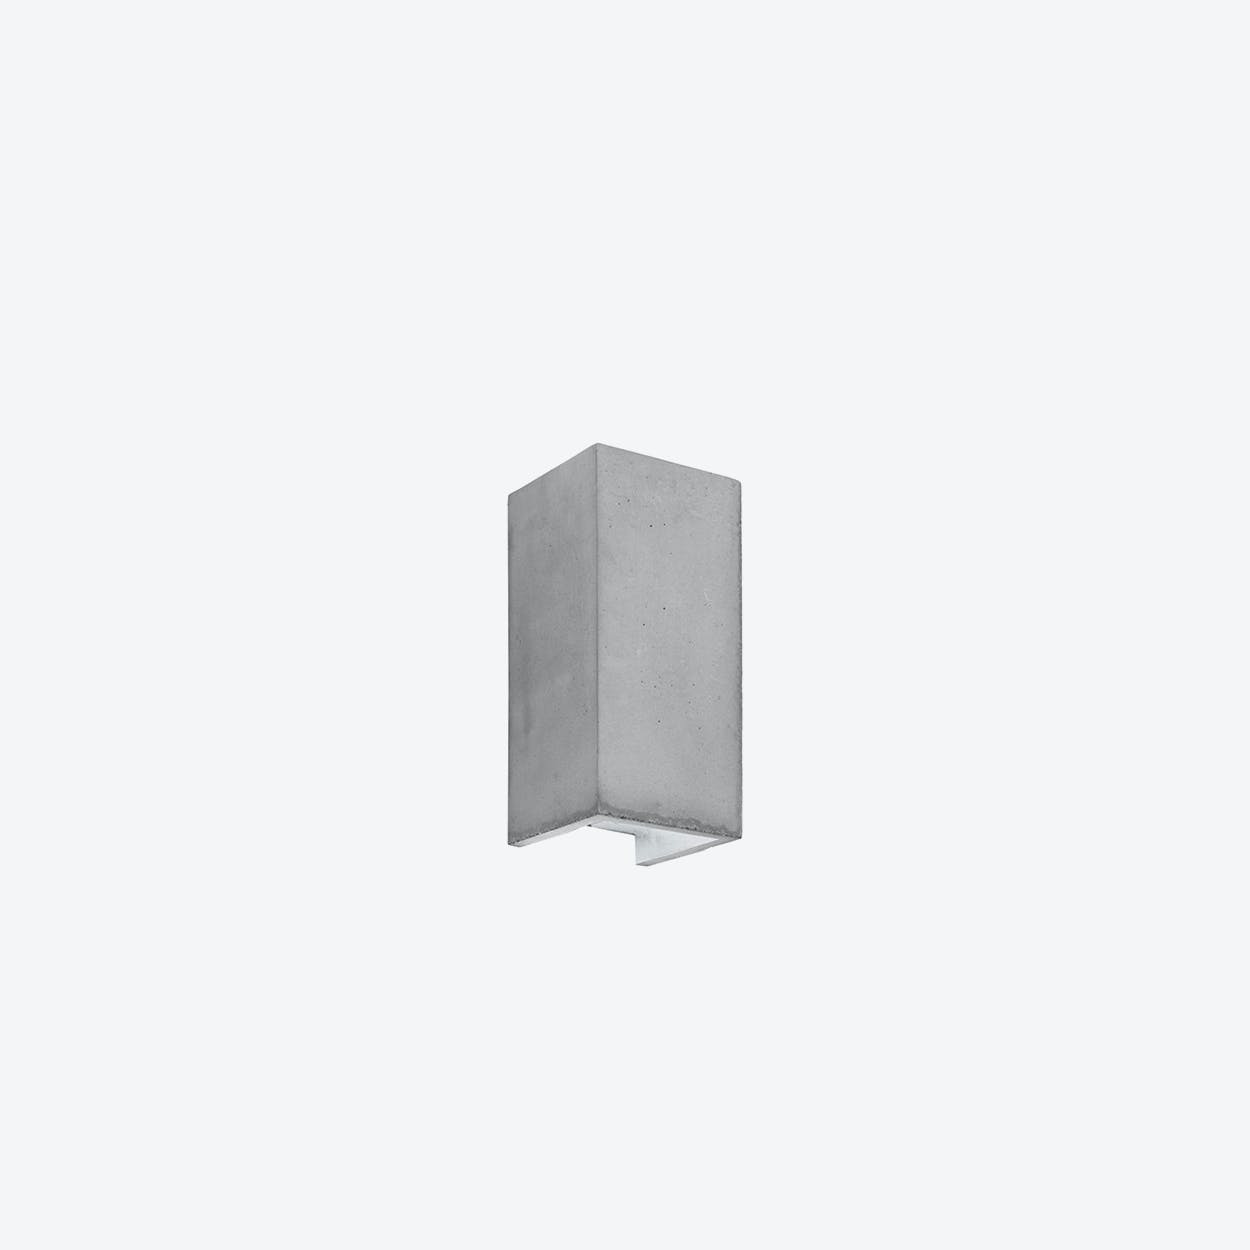 Concrete Wall Light Retangular B8 in Light Grey and Silver